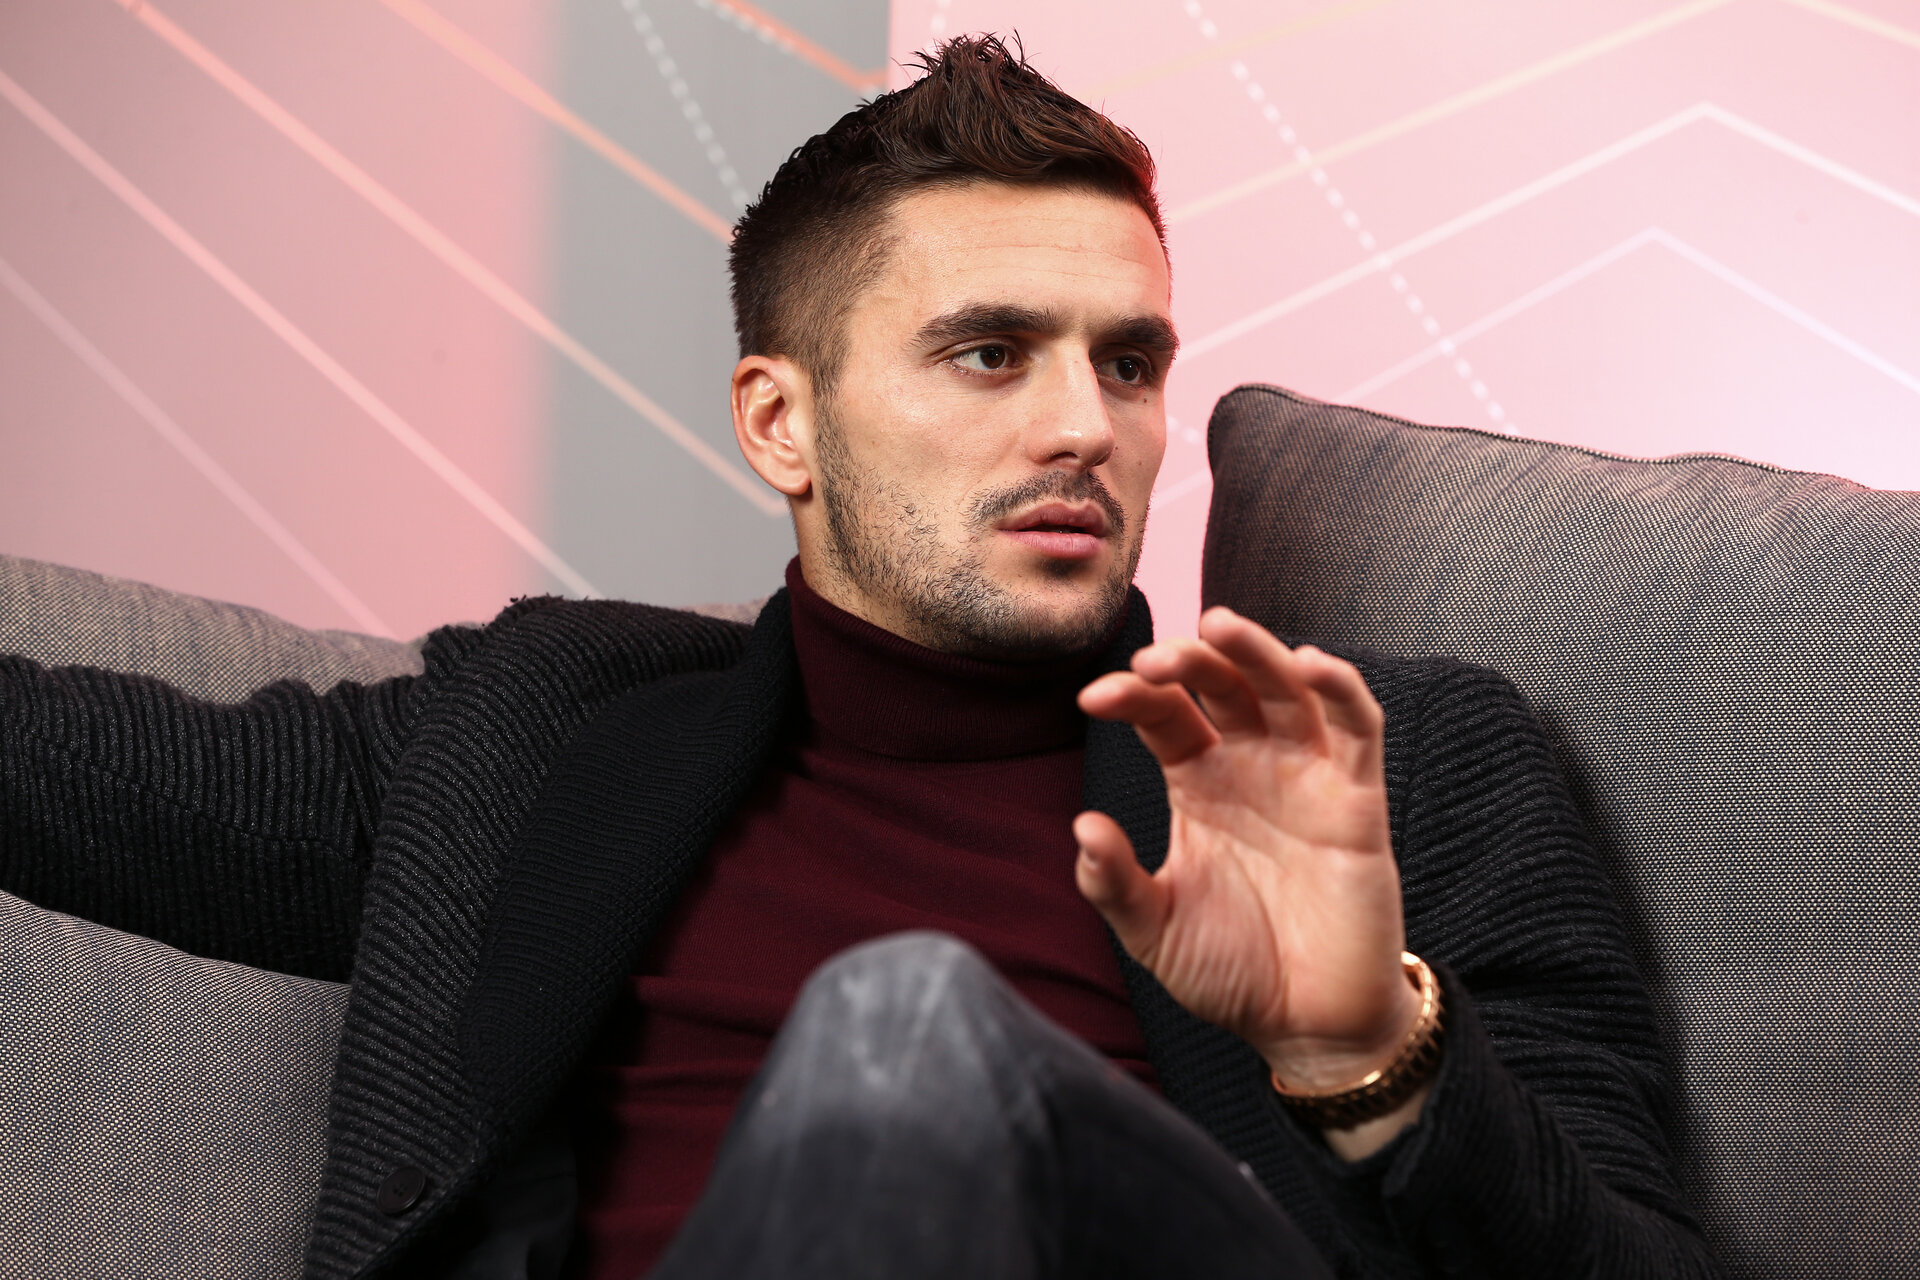 SOUTHAMPTON, ENGLAND - DECEMBER 22: Dusan Tadi? of Southampton FC during an interview and photoshoot for the Match day magazine at Staplewood Training Complex on December 22, 2017 in Southampton, England. (Photo by James Bridle - Southampton FC/Southampton FC via Getty Images) SOUTHAMPTON, ENGLAND - DECEMBER 22: Dusan Tadić of Southampton FC during an interview and photoshoot for the Match day magazine at Staplewood Training Complex on December 22, 2017 in Southampton, England. (Photo by James Bridle - Southampton FC/Southampton FC via Getty Images)